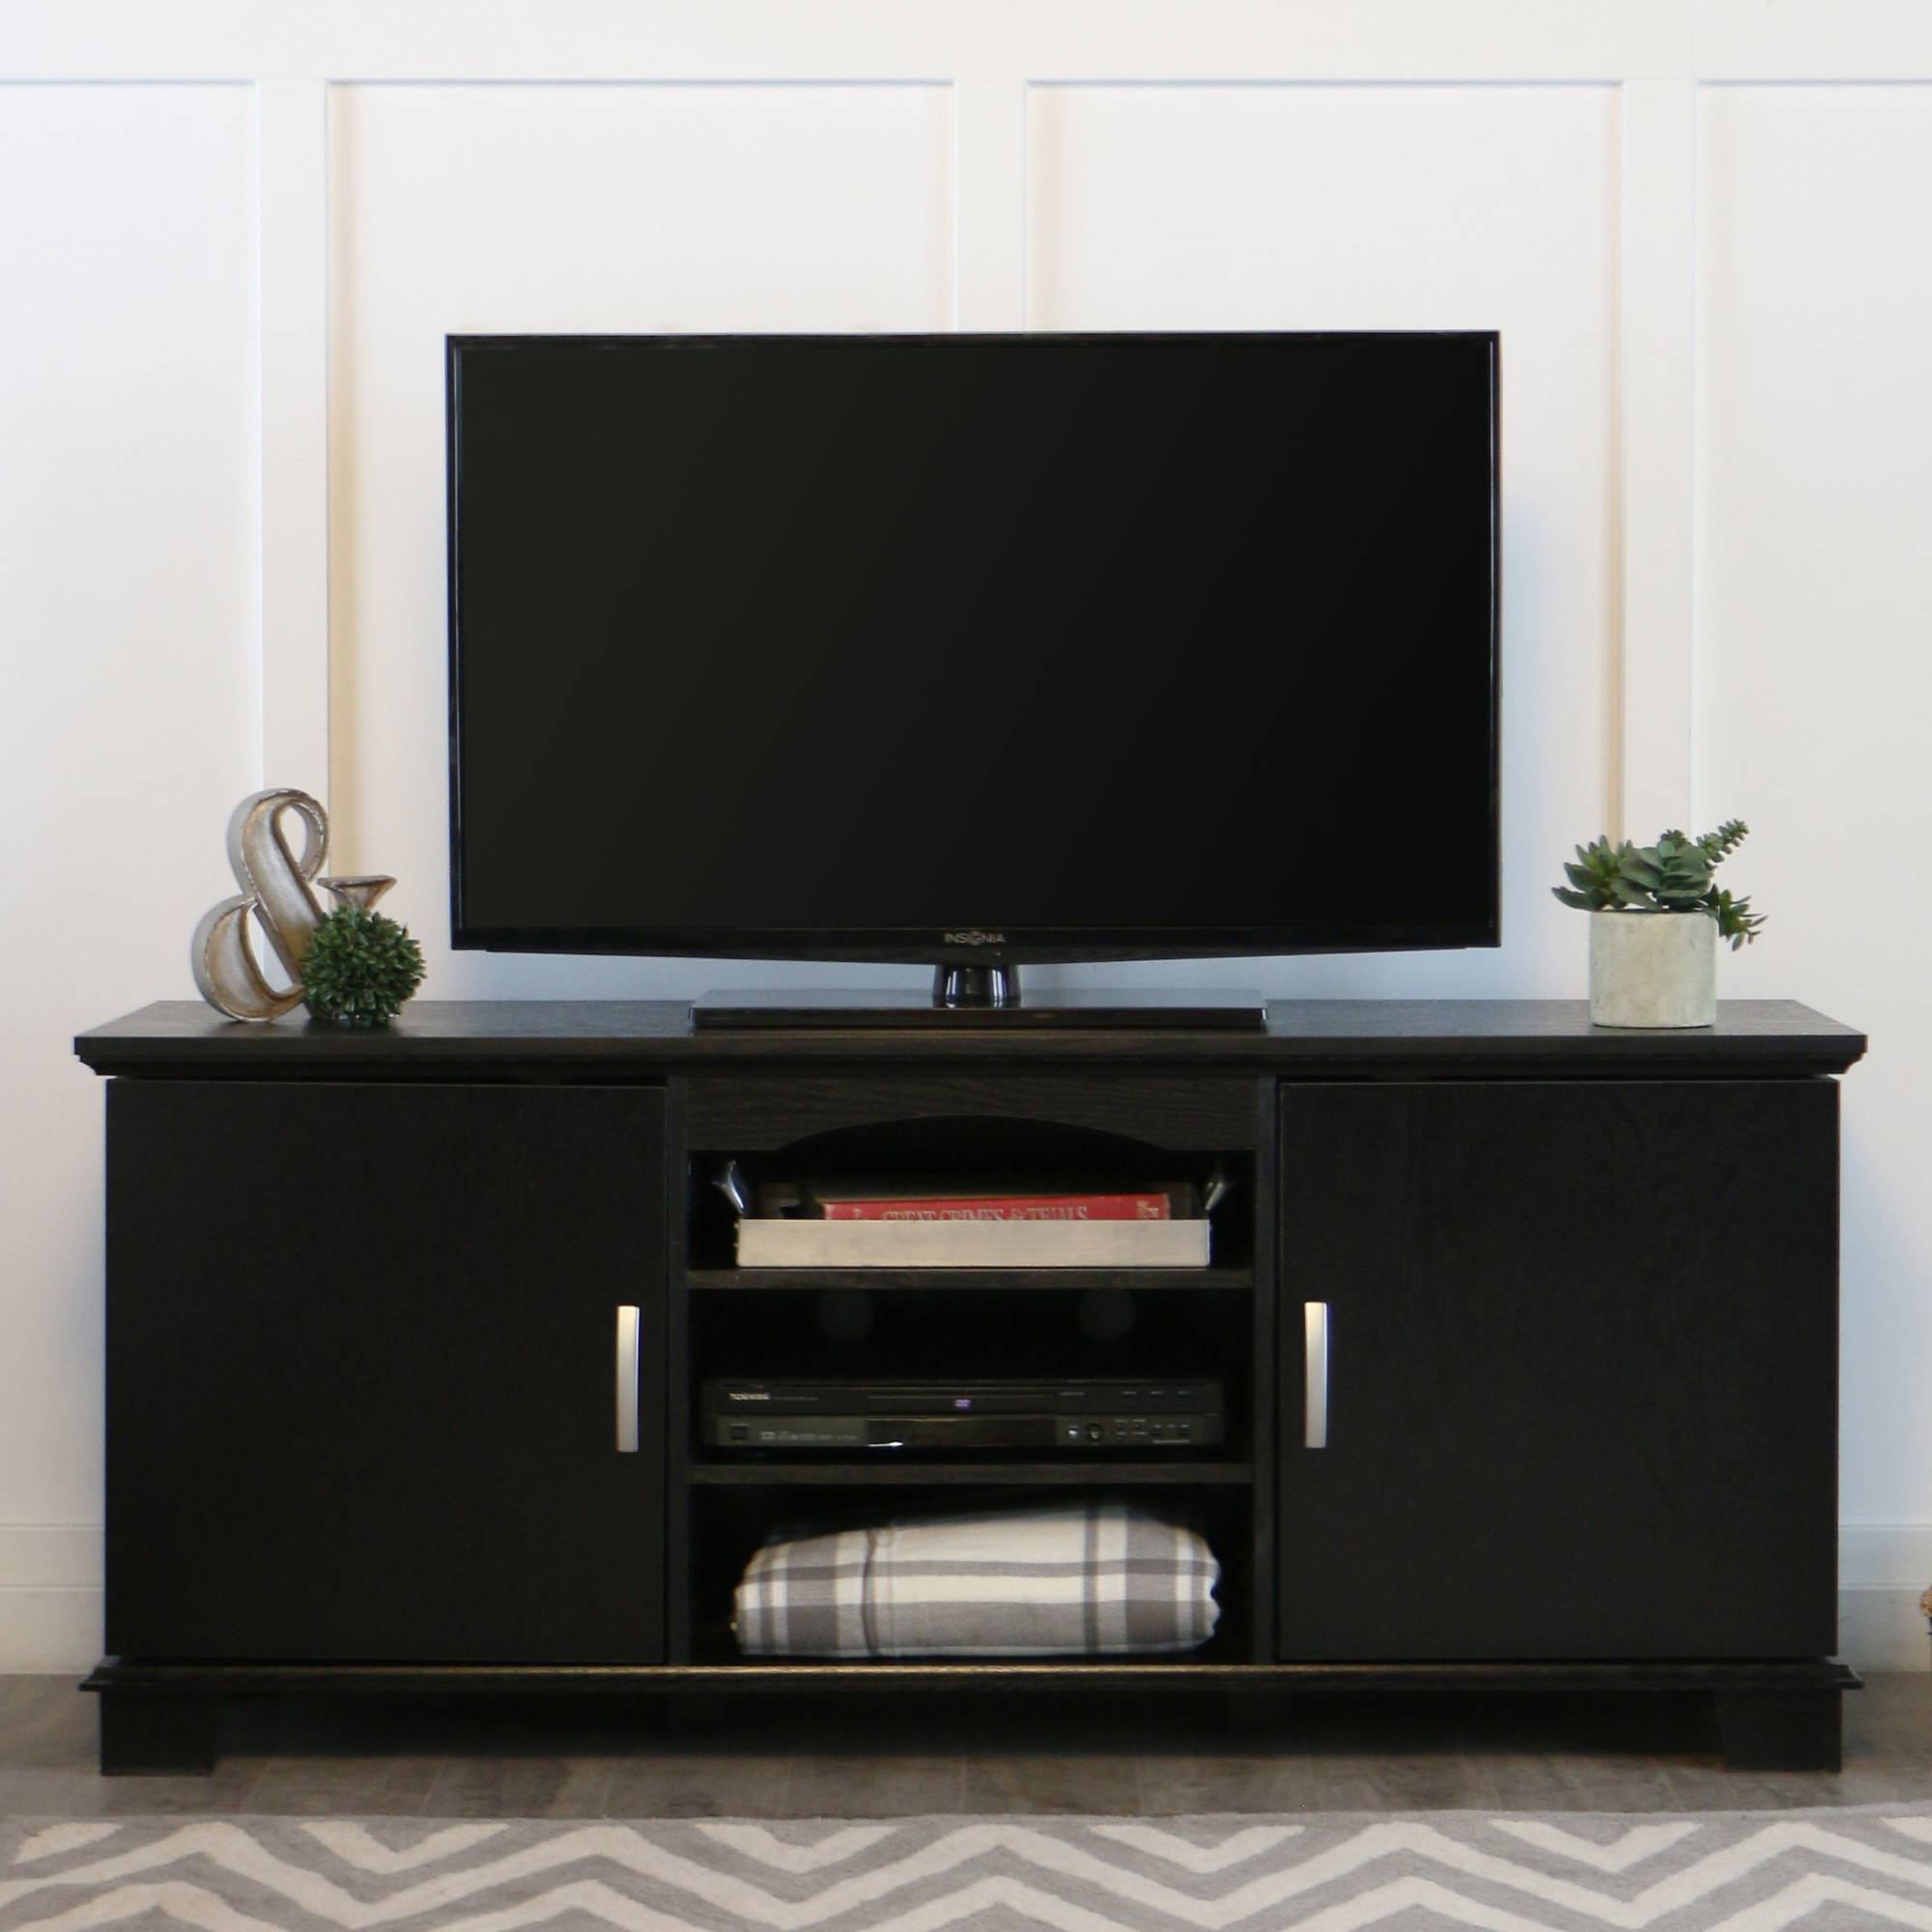 30 Inch Wide Tv Stand 36 Corner Walmart Stands 39 Hardwood 48 Iron throughout Murphy 72 Inch Tv Stands (Image 2 of 30)